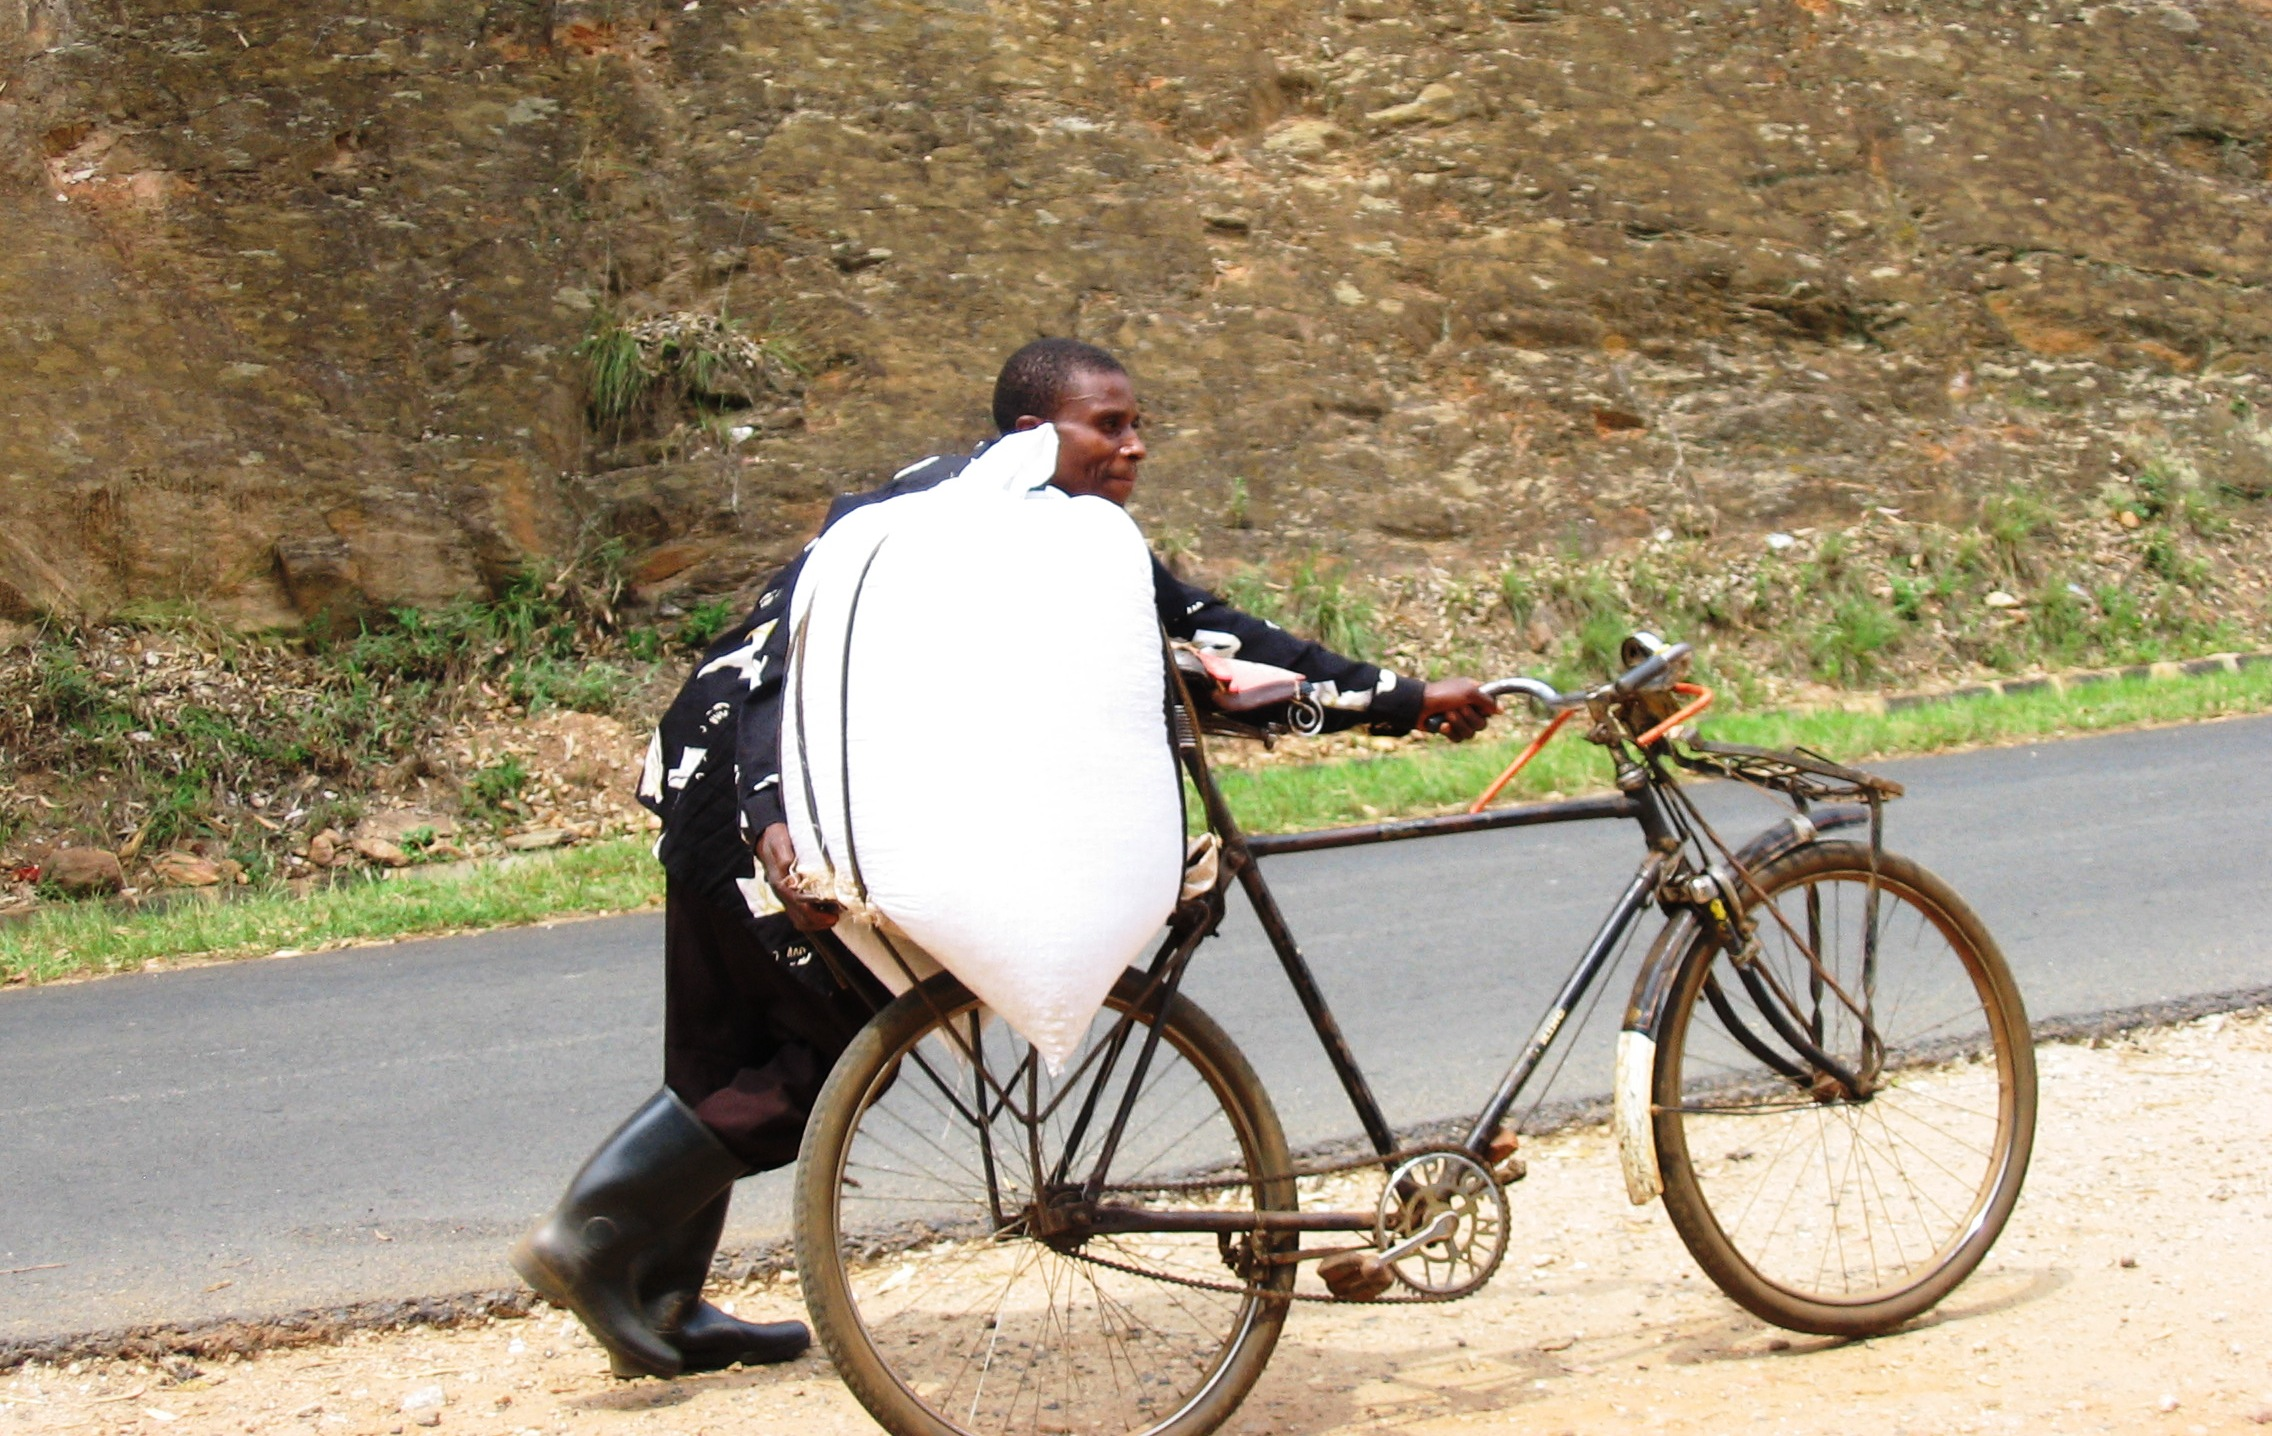 bike carries goods from market